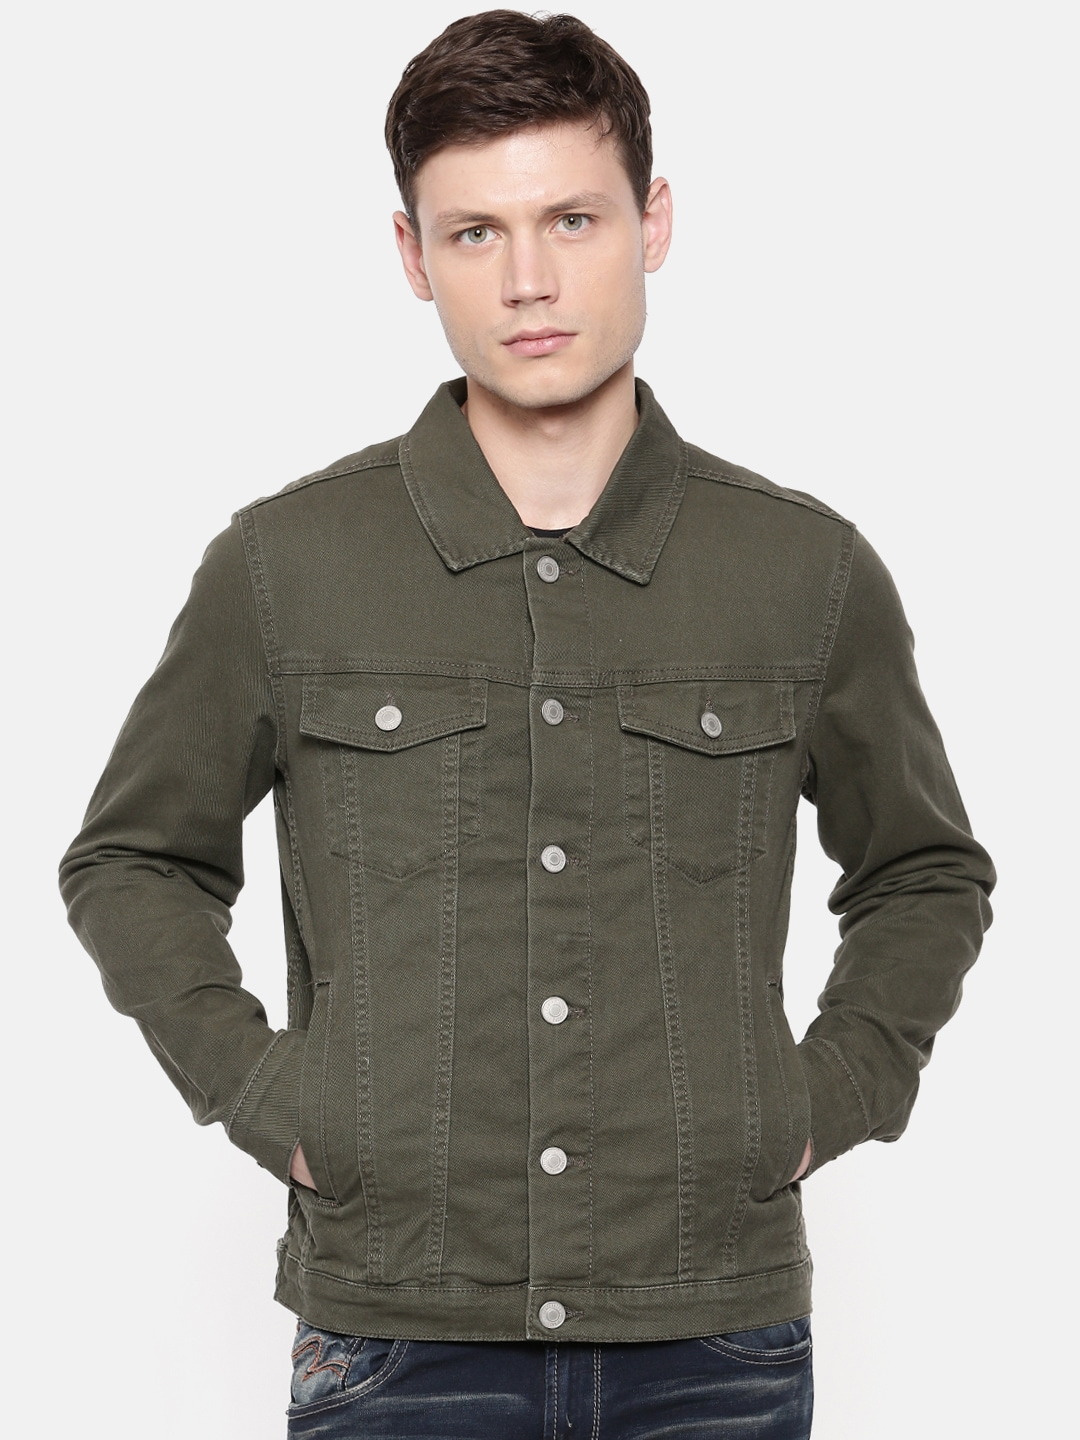 8544f168df5d Jack   Jones Jackets Rain Jacket - Buy Jack   Jones Jackets Rain Jacket  online in India